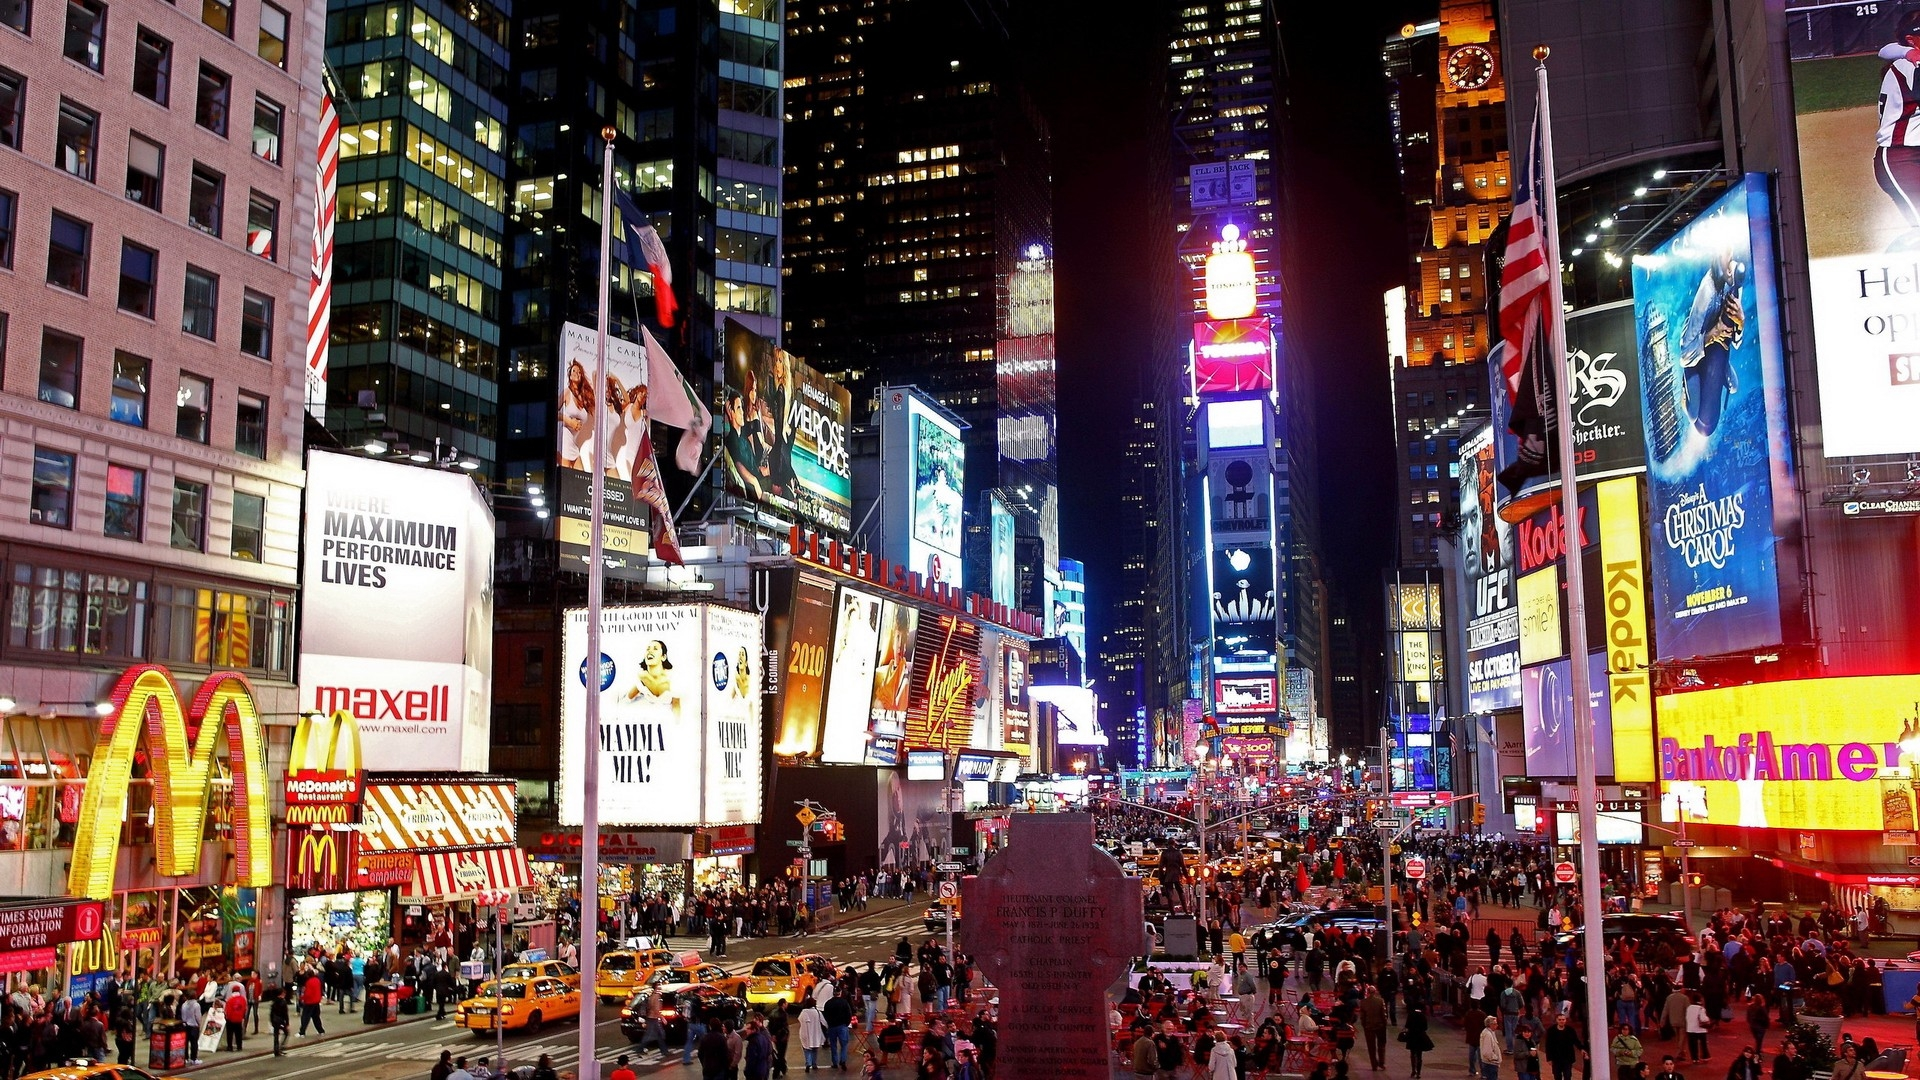 Get The Latest New York Manhattan Street News Pictures And Videos Learn All About From Wallpapers4uorg Your Wallpaper